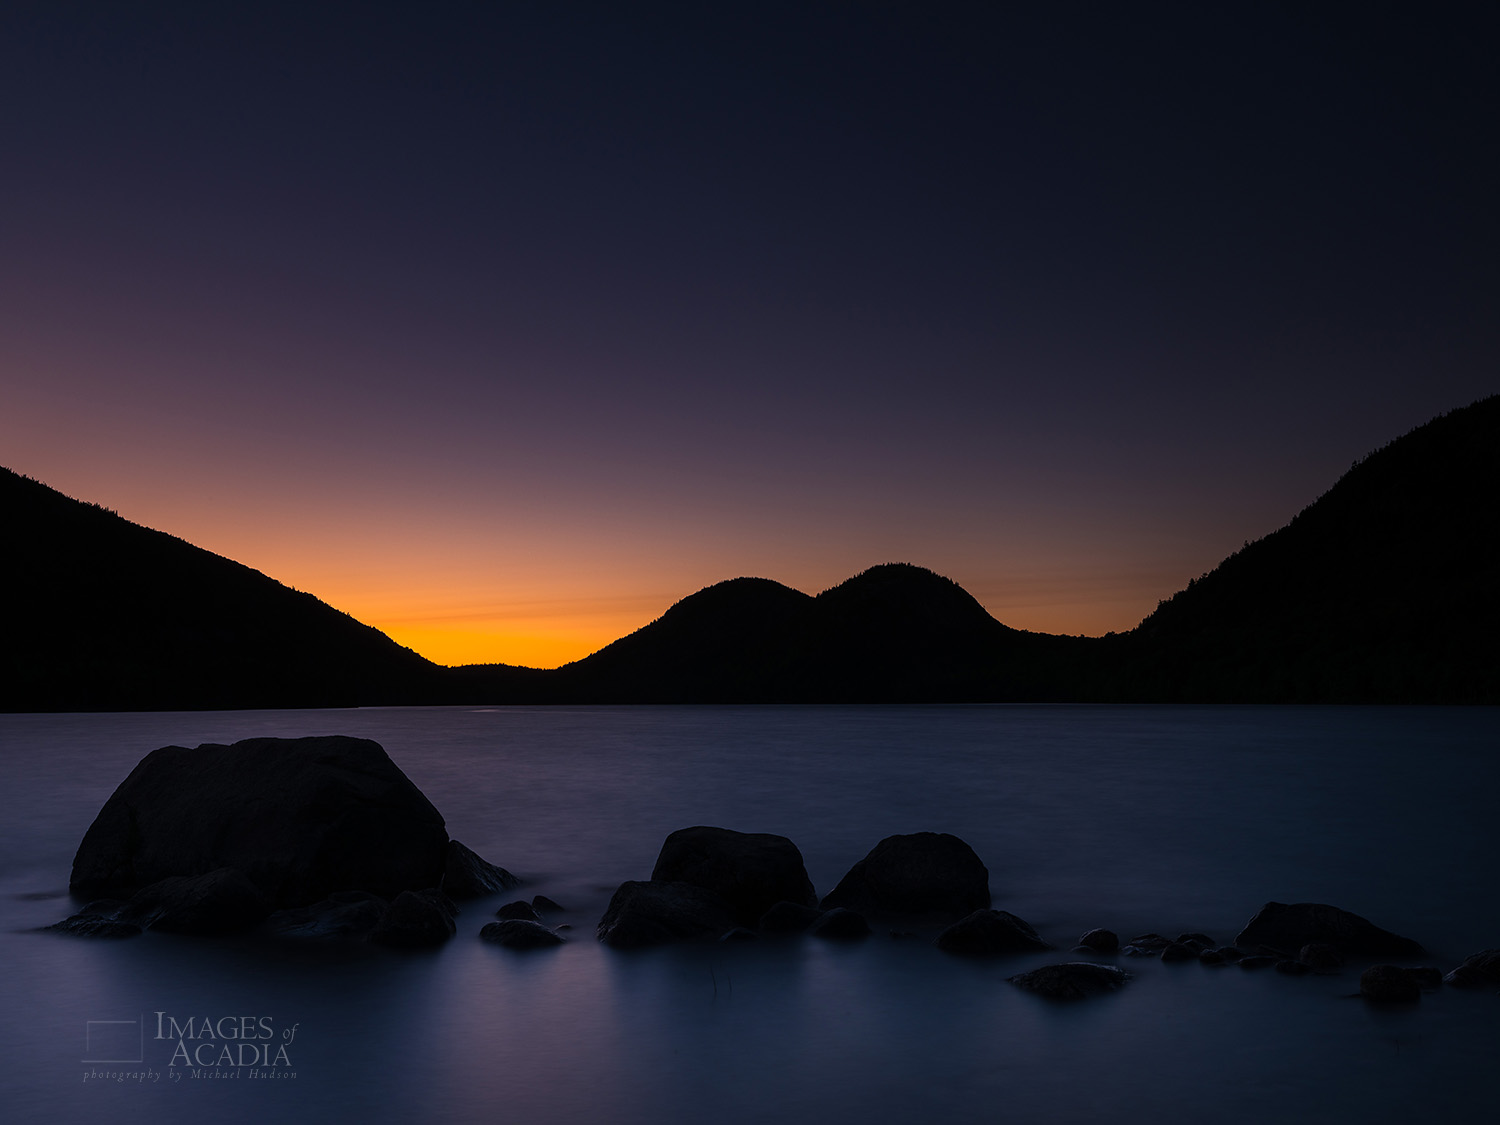 Sundown at Jordan Pond